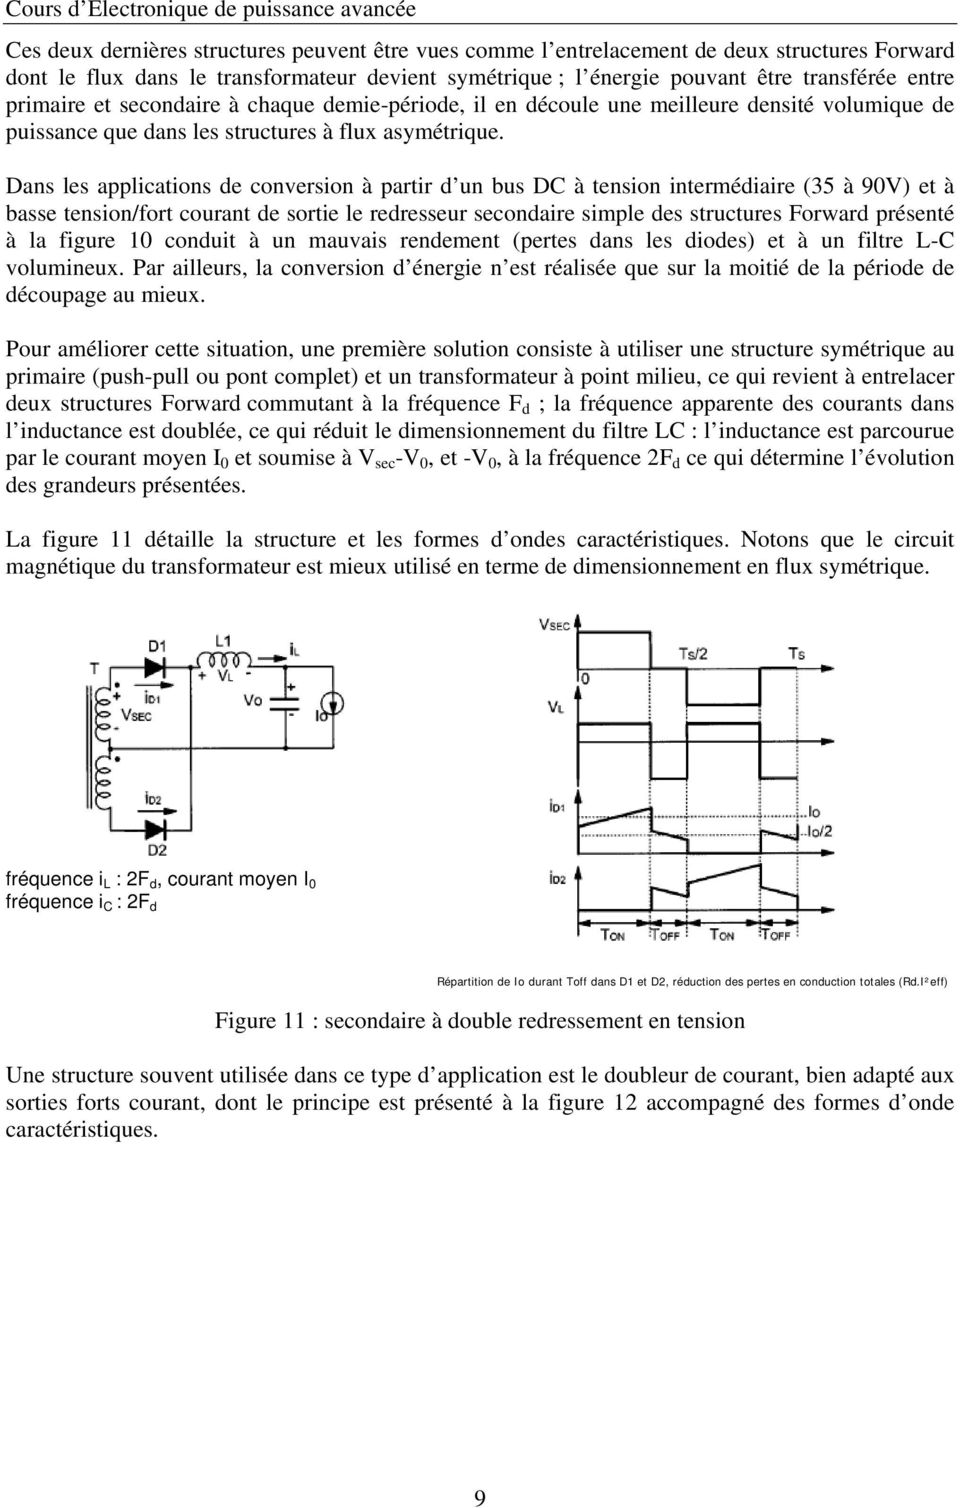 Dans les applications de conversion à partir d un bus DC à tension intermédiaire (35 à 90V) et à basse tension/fort courant de sortie le redresseur secondaire simple des structures Forward présenté à